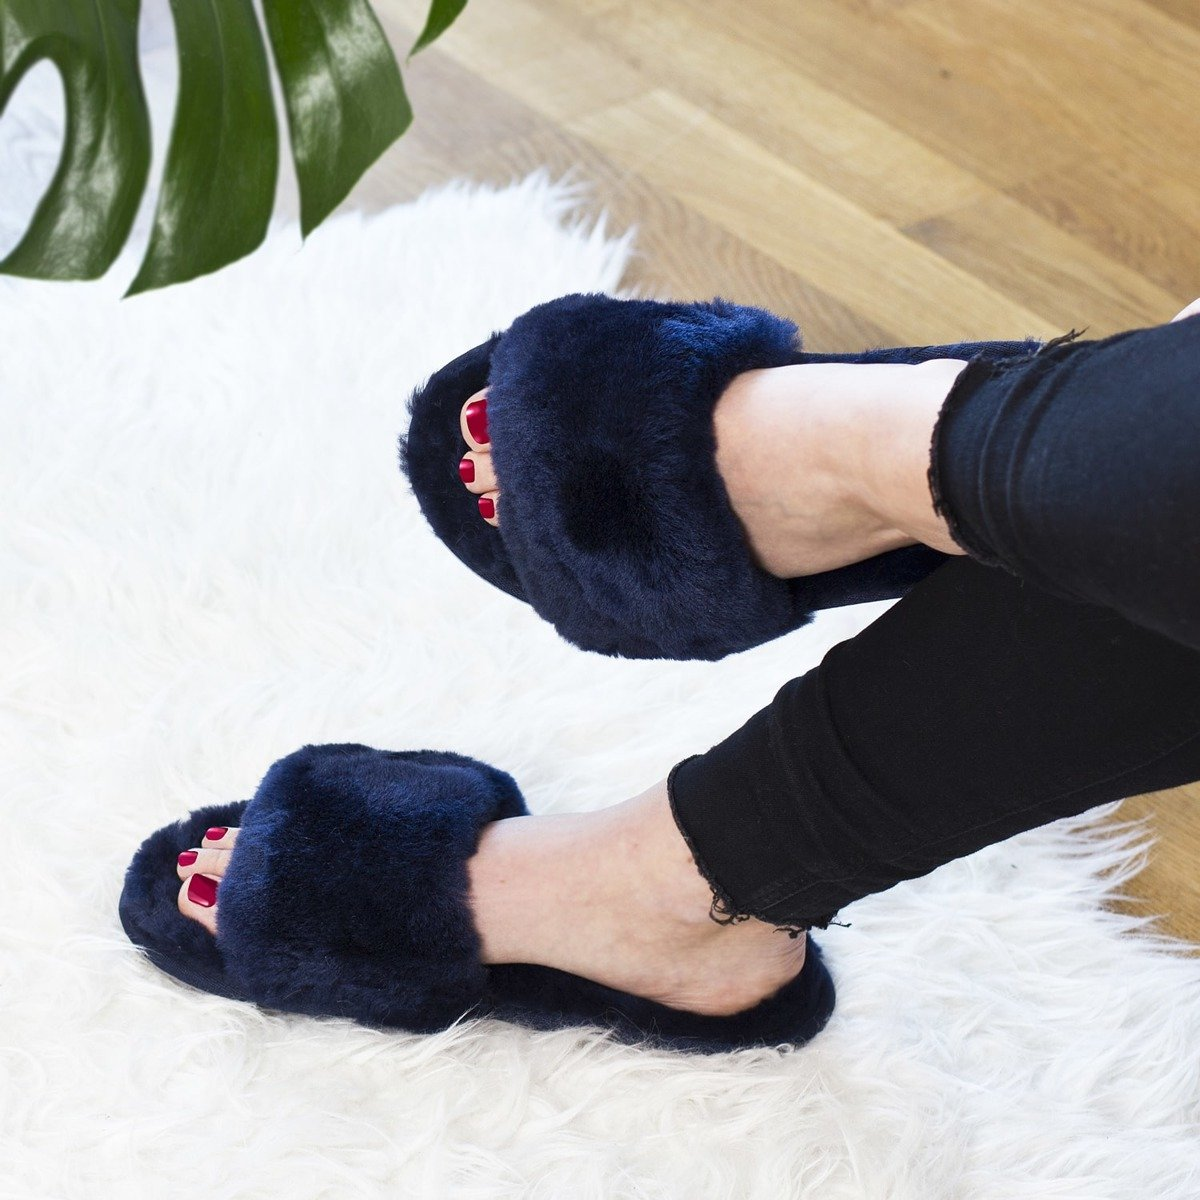 baceda115 SOXO Women's slippers sheepskin navy blue | SOXO | Socks, slippers ...